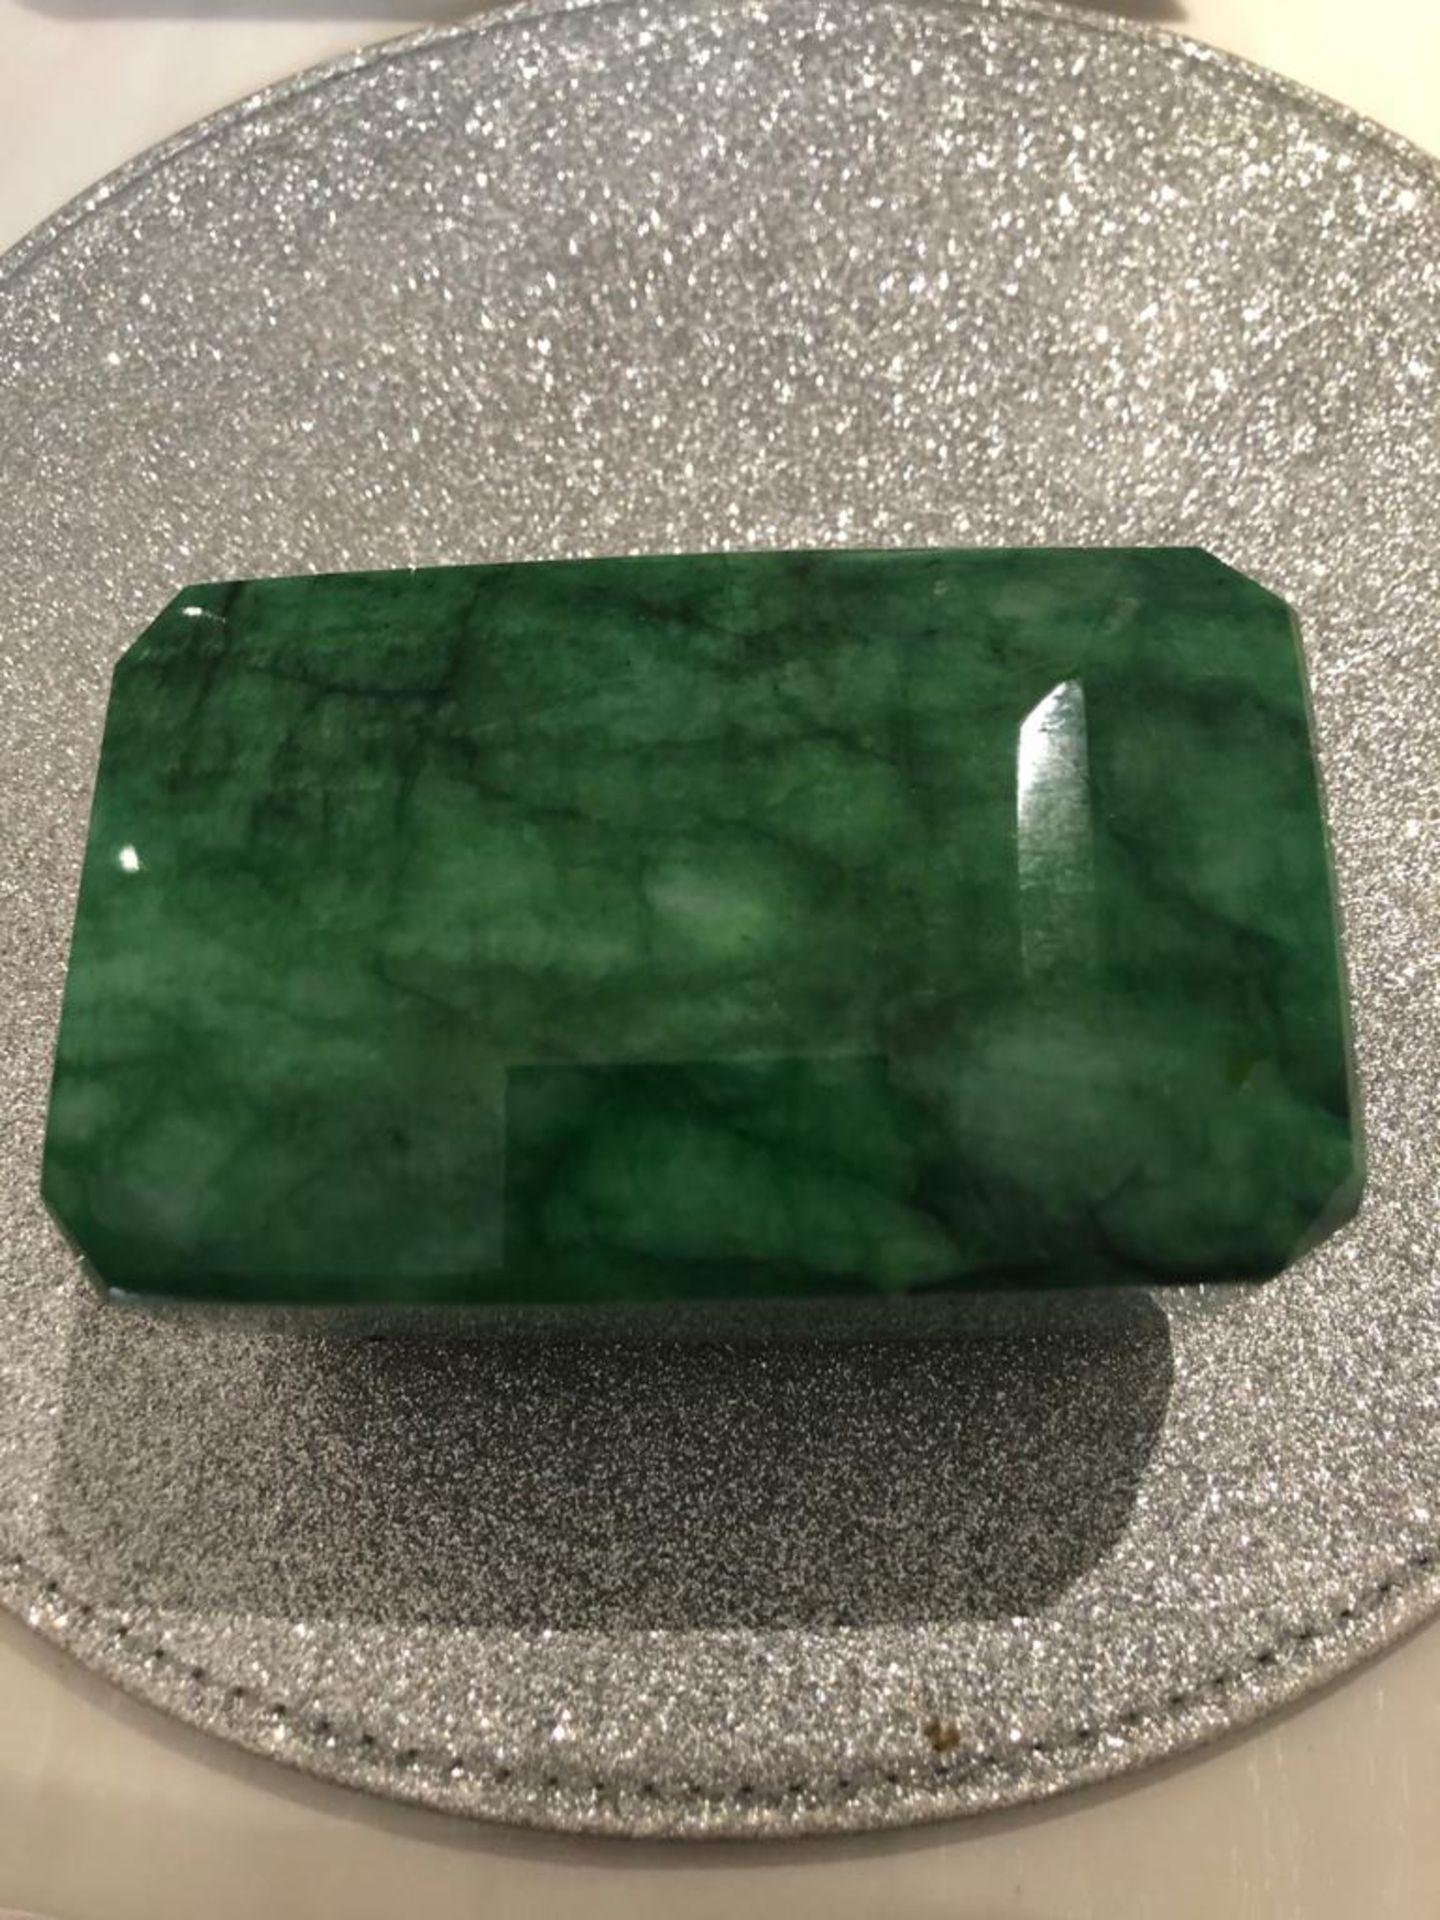 8954 CT EMERALD COLLECTIORS PIECE - Image 4 of 6